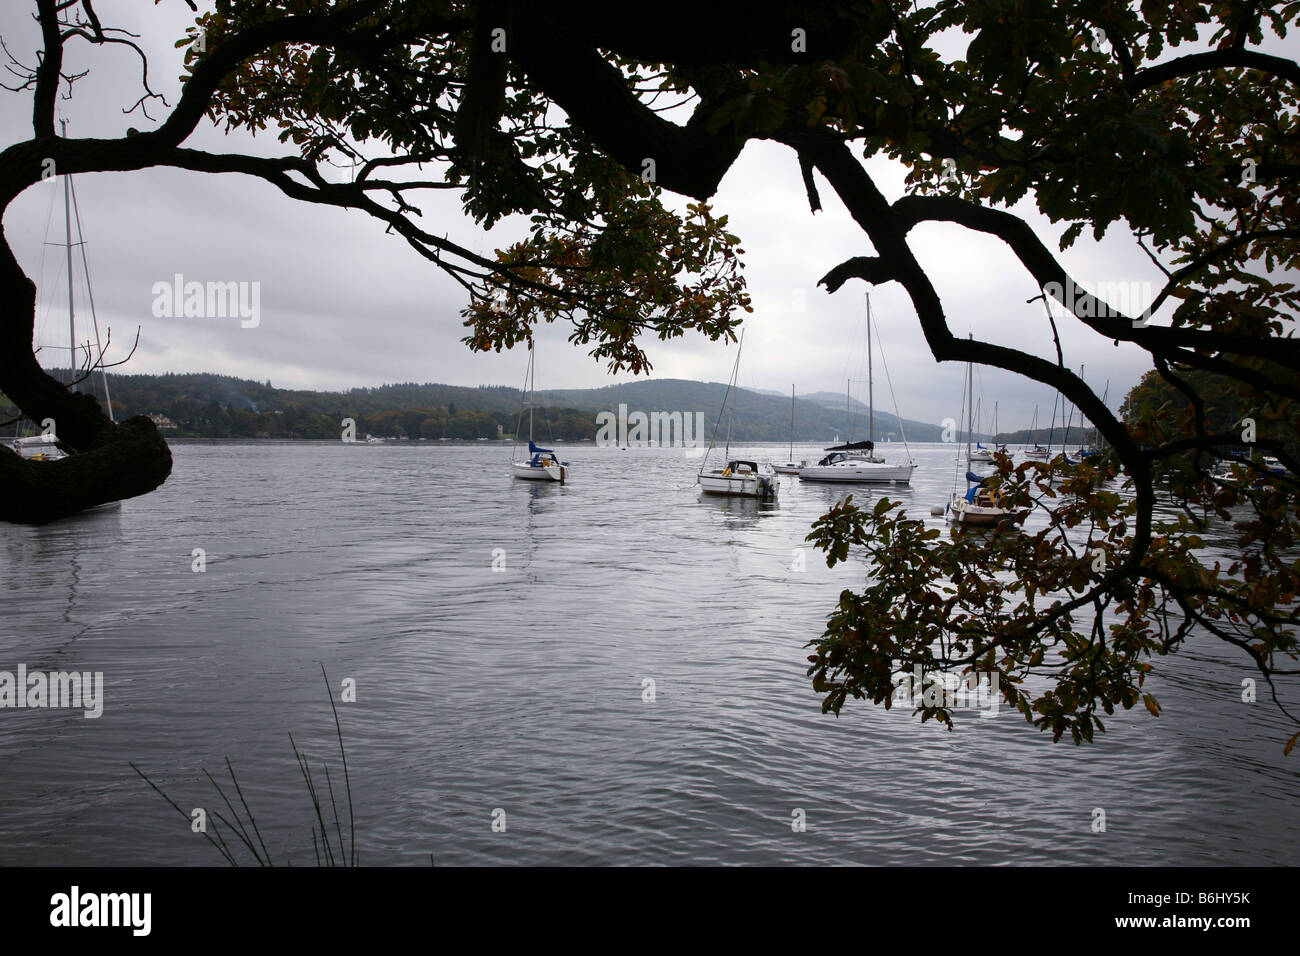 An Autumn view across Lake Windermere in the Lake District - Stock Image